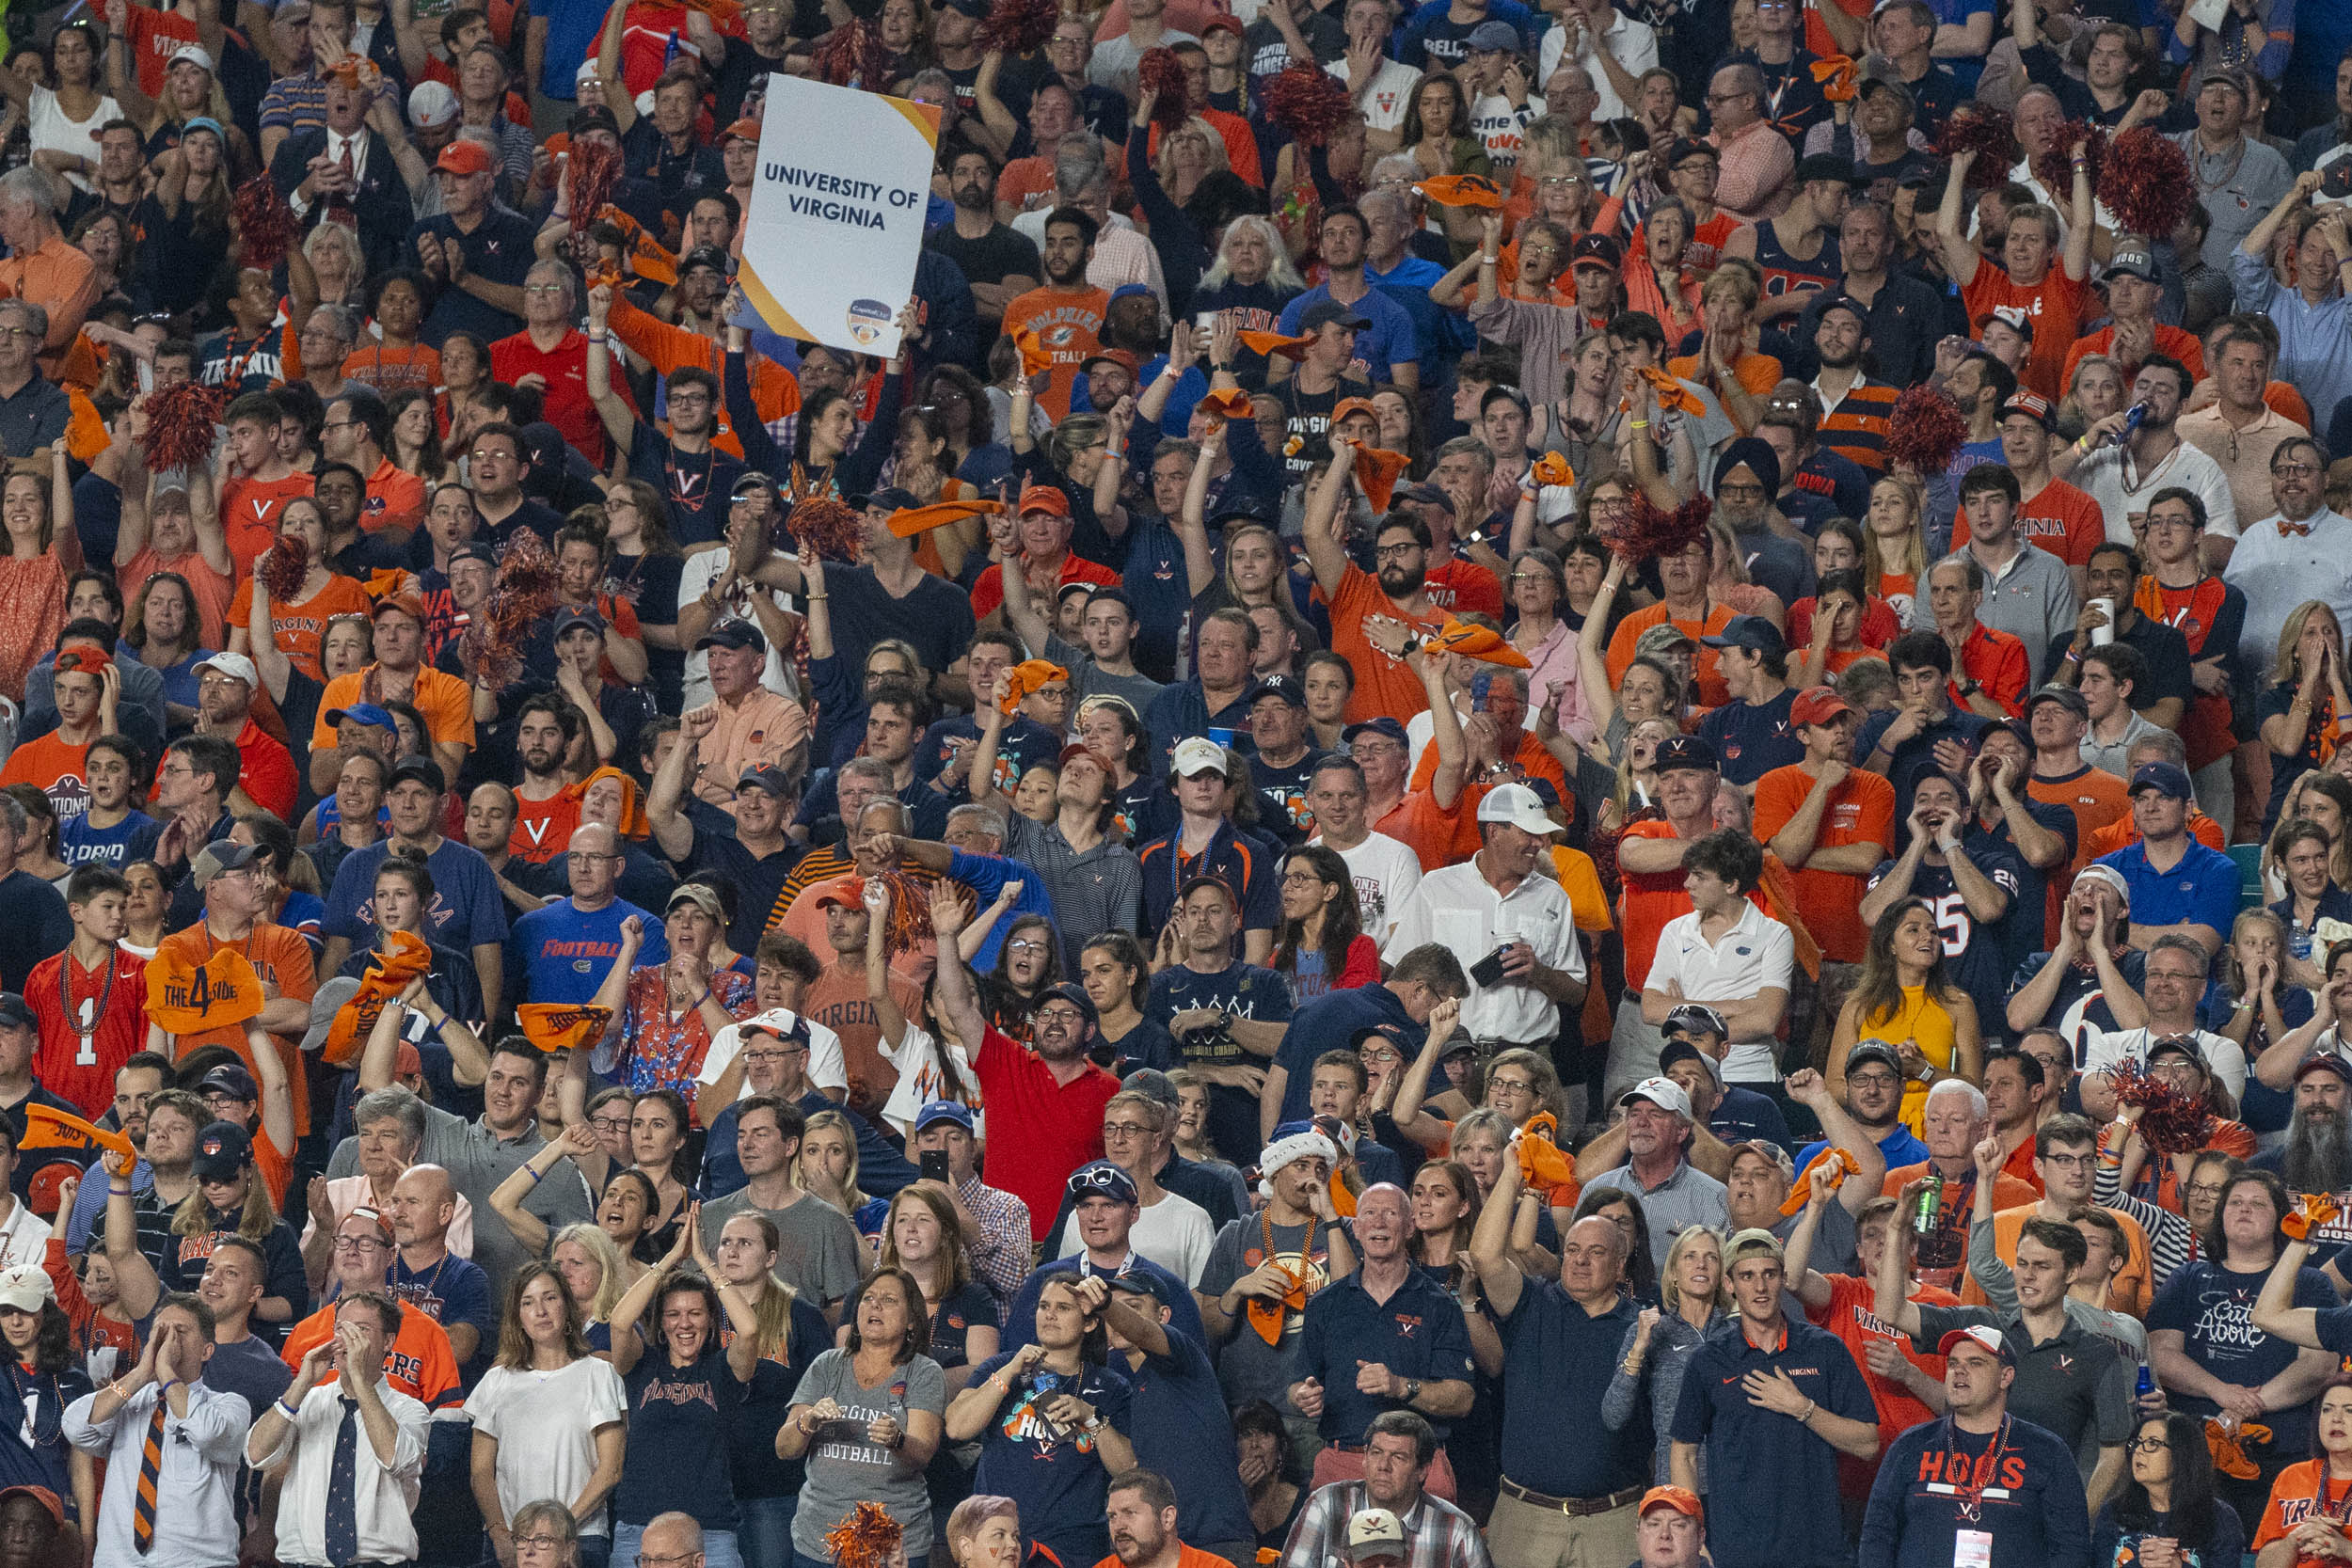 More than 65,000 fans were on hand, and the UVA contingent made themselves heard.